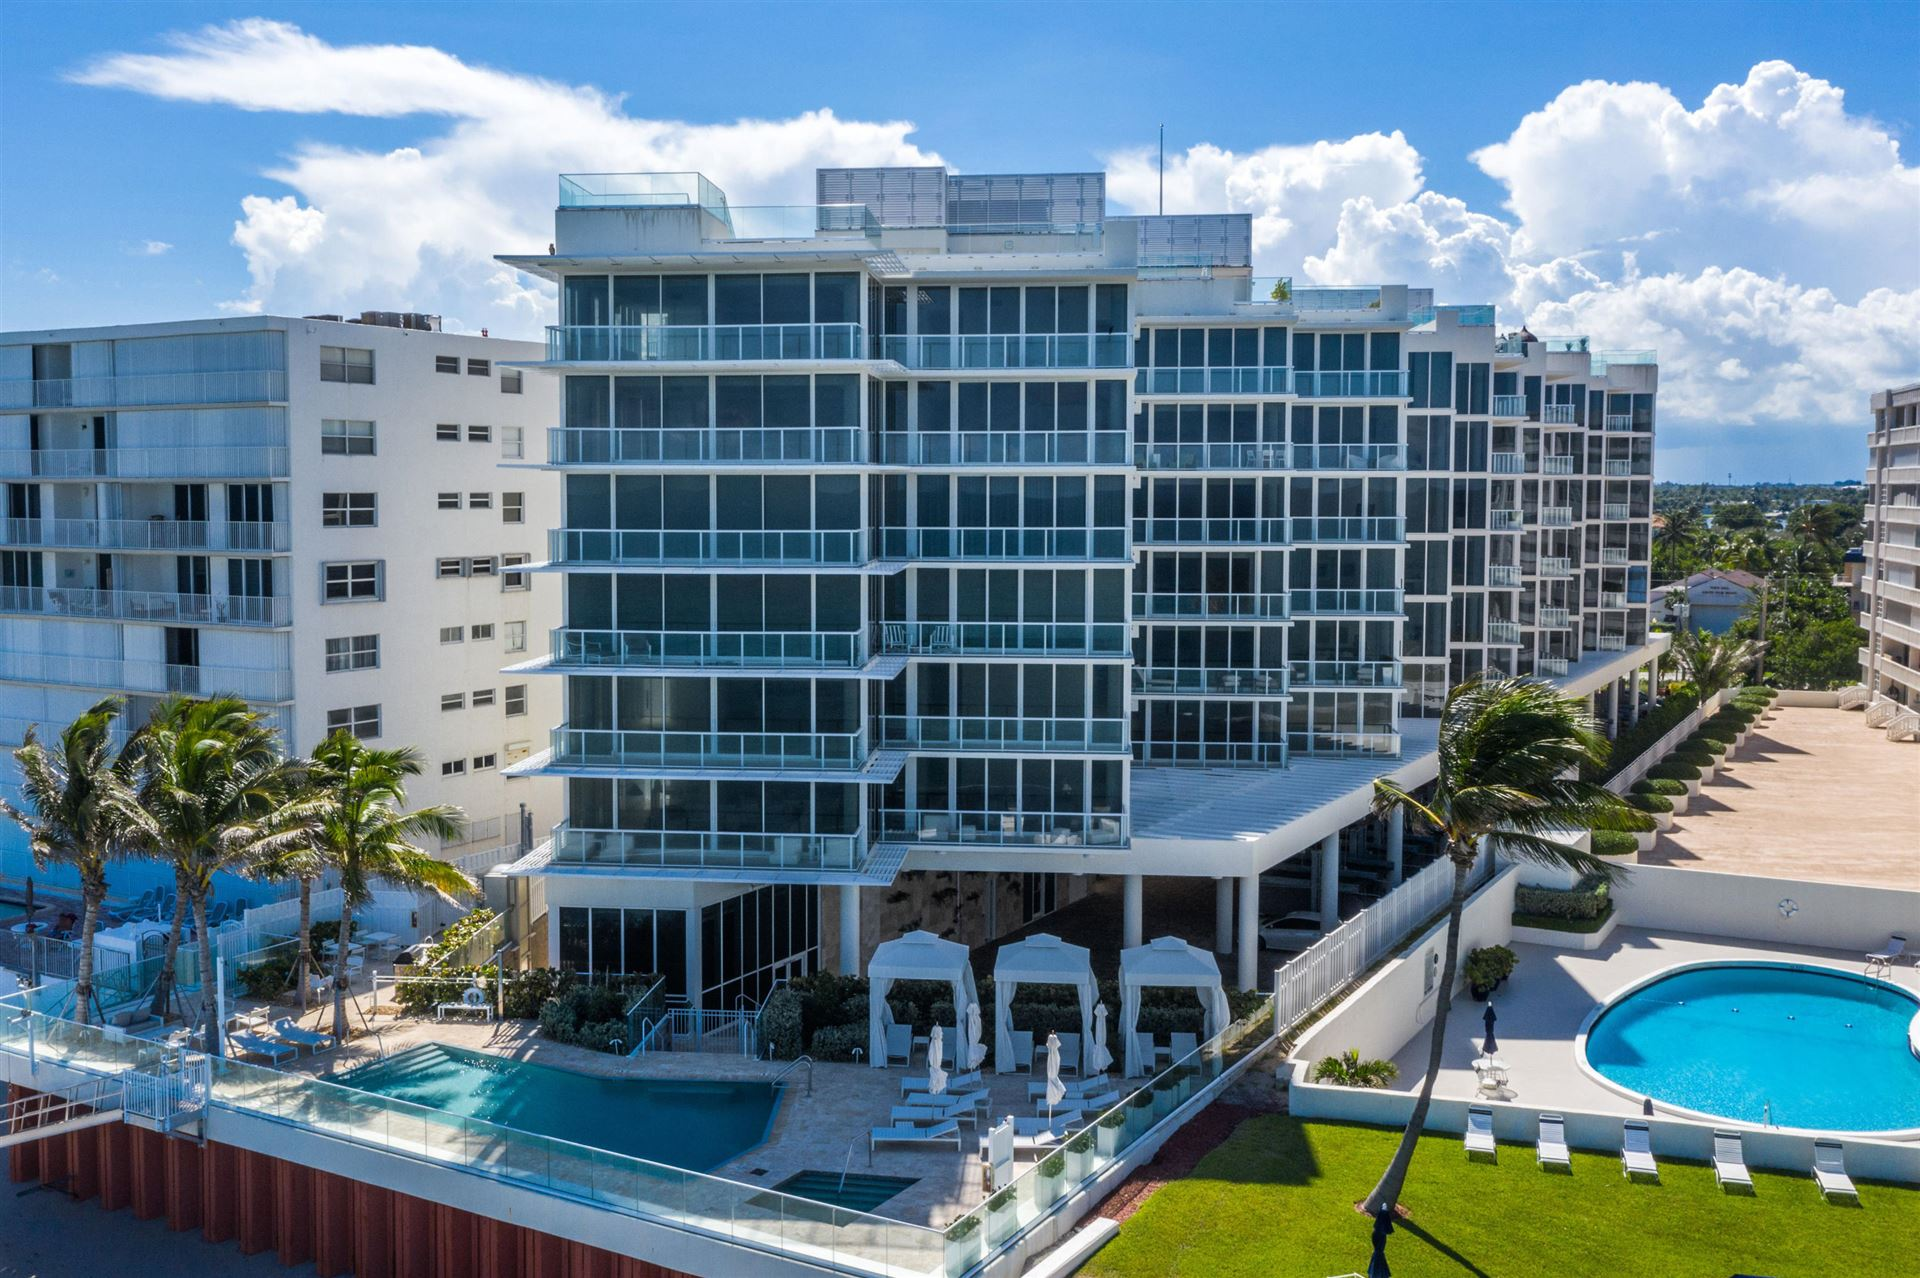 3550 S Ocean Boulevard #4 E, South Palm Beach, FL 33480 - #: RX-10652501